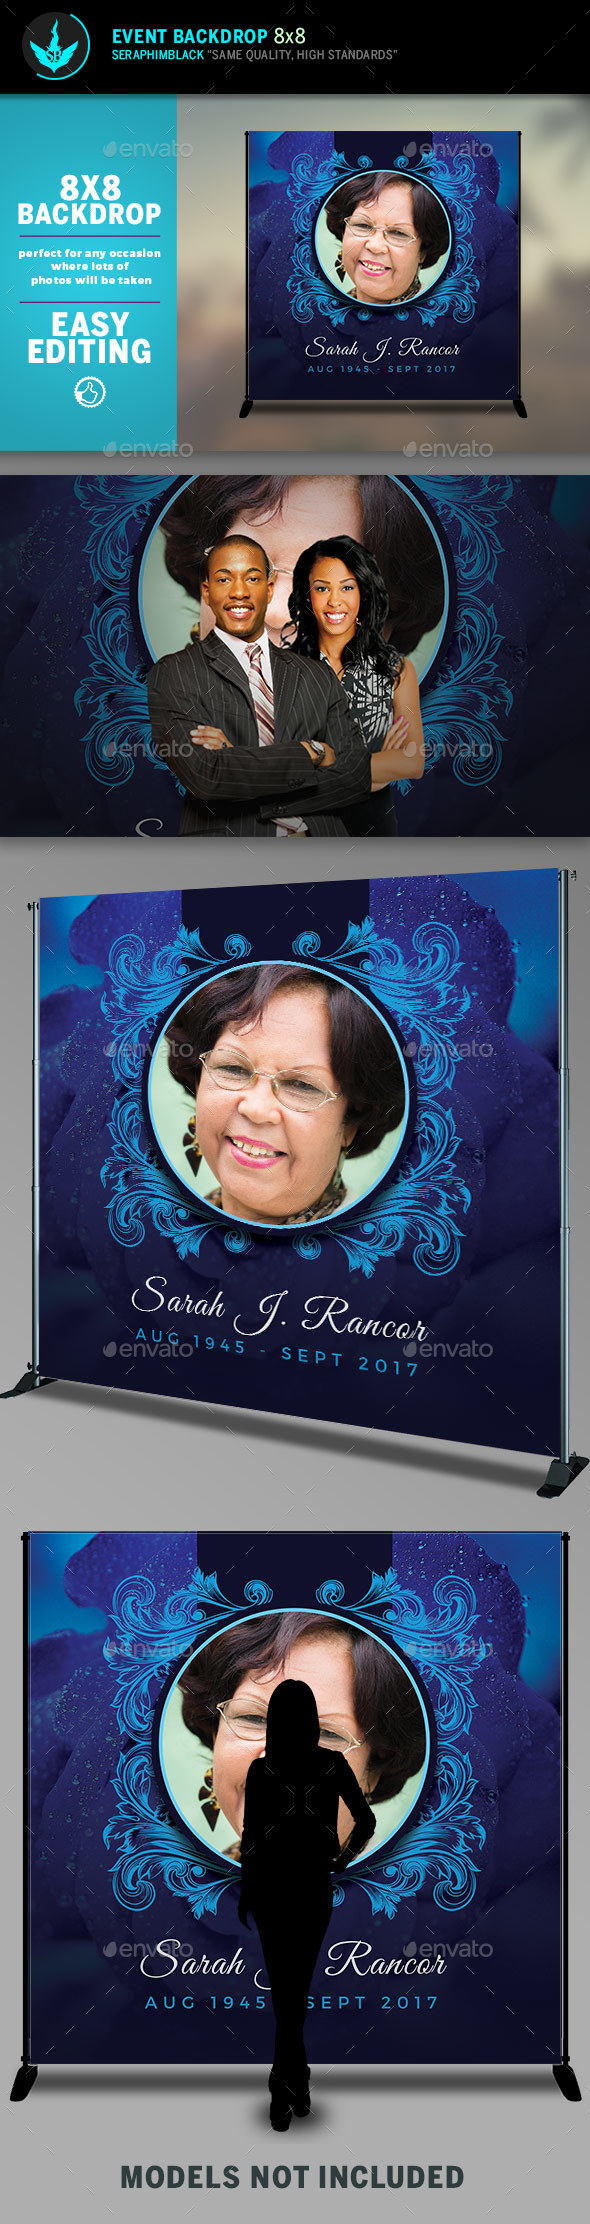 Blue Rose 8x8 Funeral Backdrop Template - Signage Print Templates